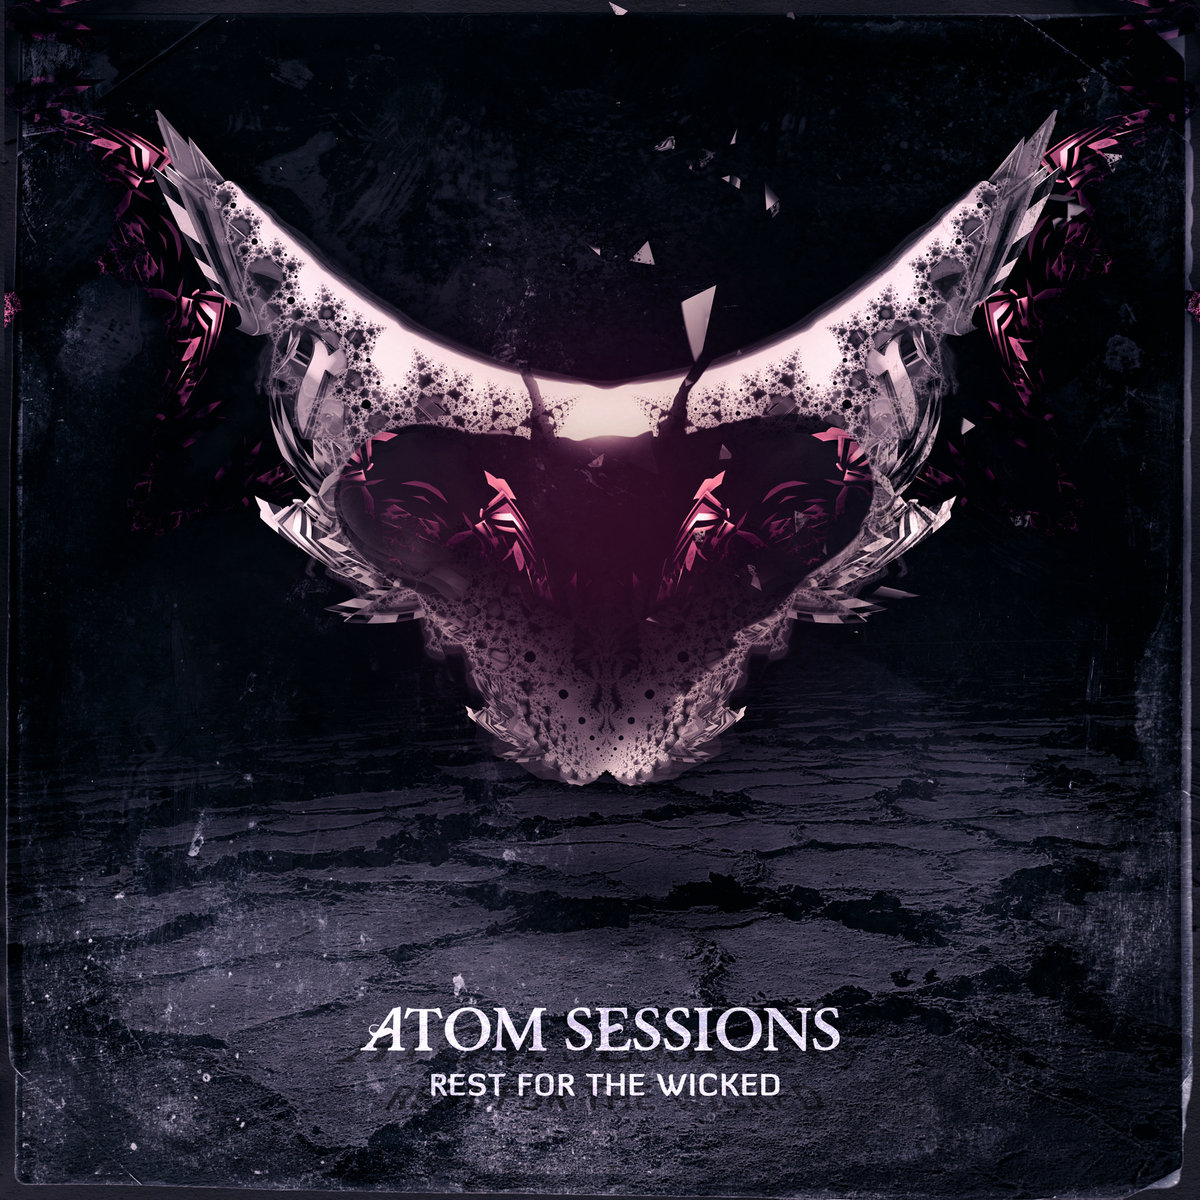 Atom Sessions - Distant Drums @ 'Rest For The Wicked' album (bass, electronic)